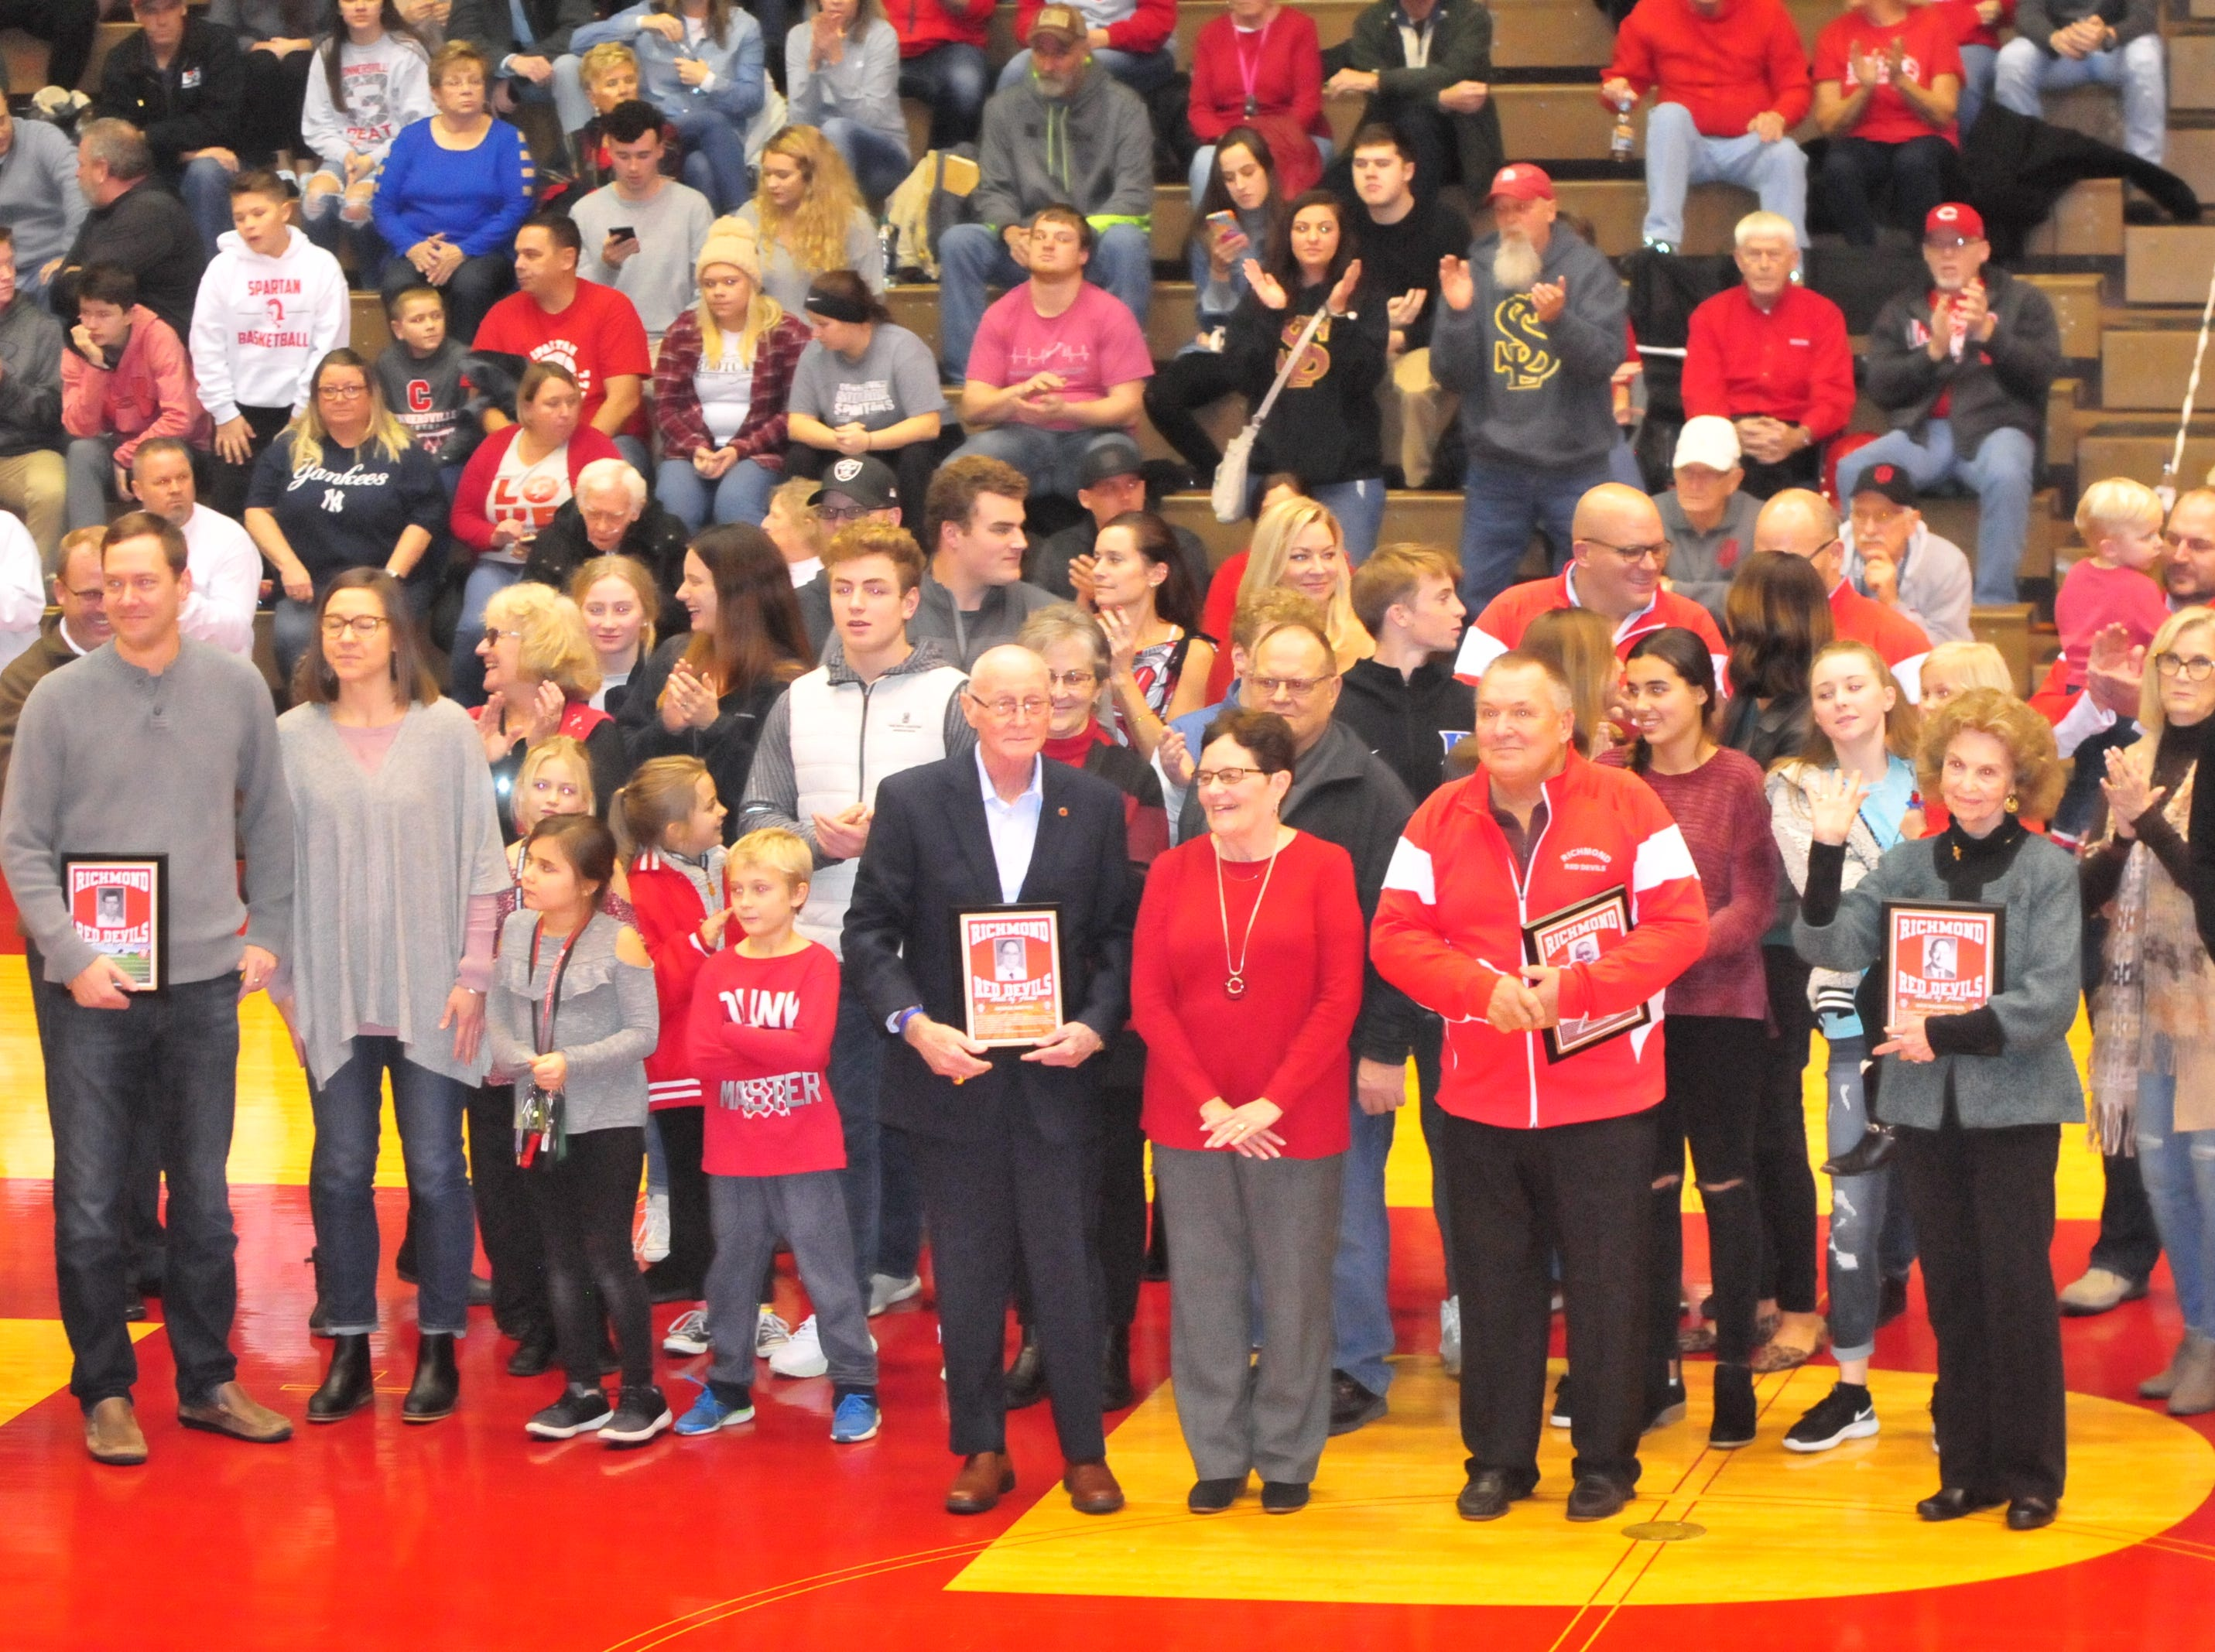 Dick Baumgartner, John Cate, George Griffith, Dave Bowers, Charlie Hilton, Joe Moehring and Hub Etchison were inducted into the inaugural RHS Coaches Hall of Fame during Saturday's 42-39 boys basketball loss to Connersville Dec. 15, 2018 at Tiernan Center.